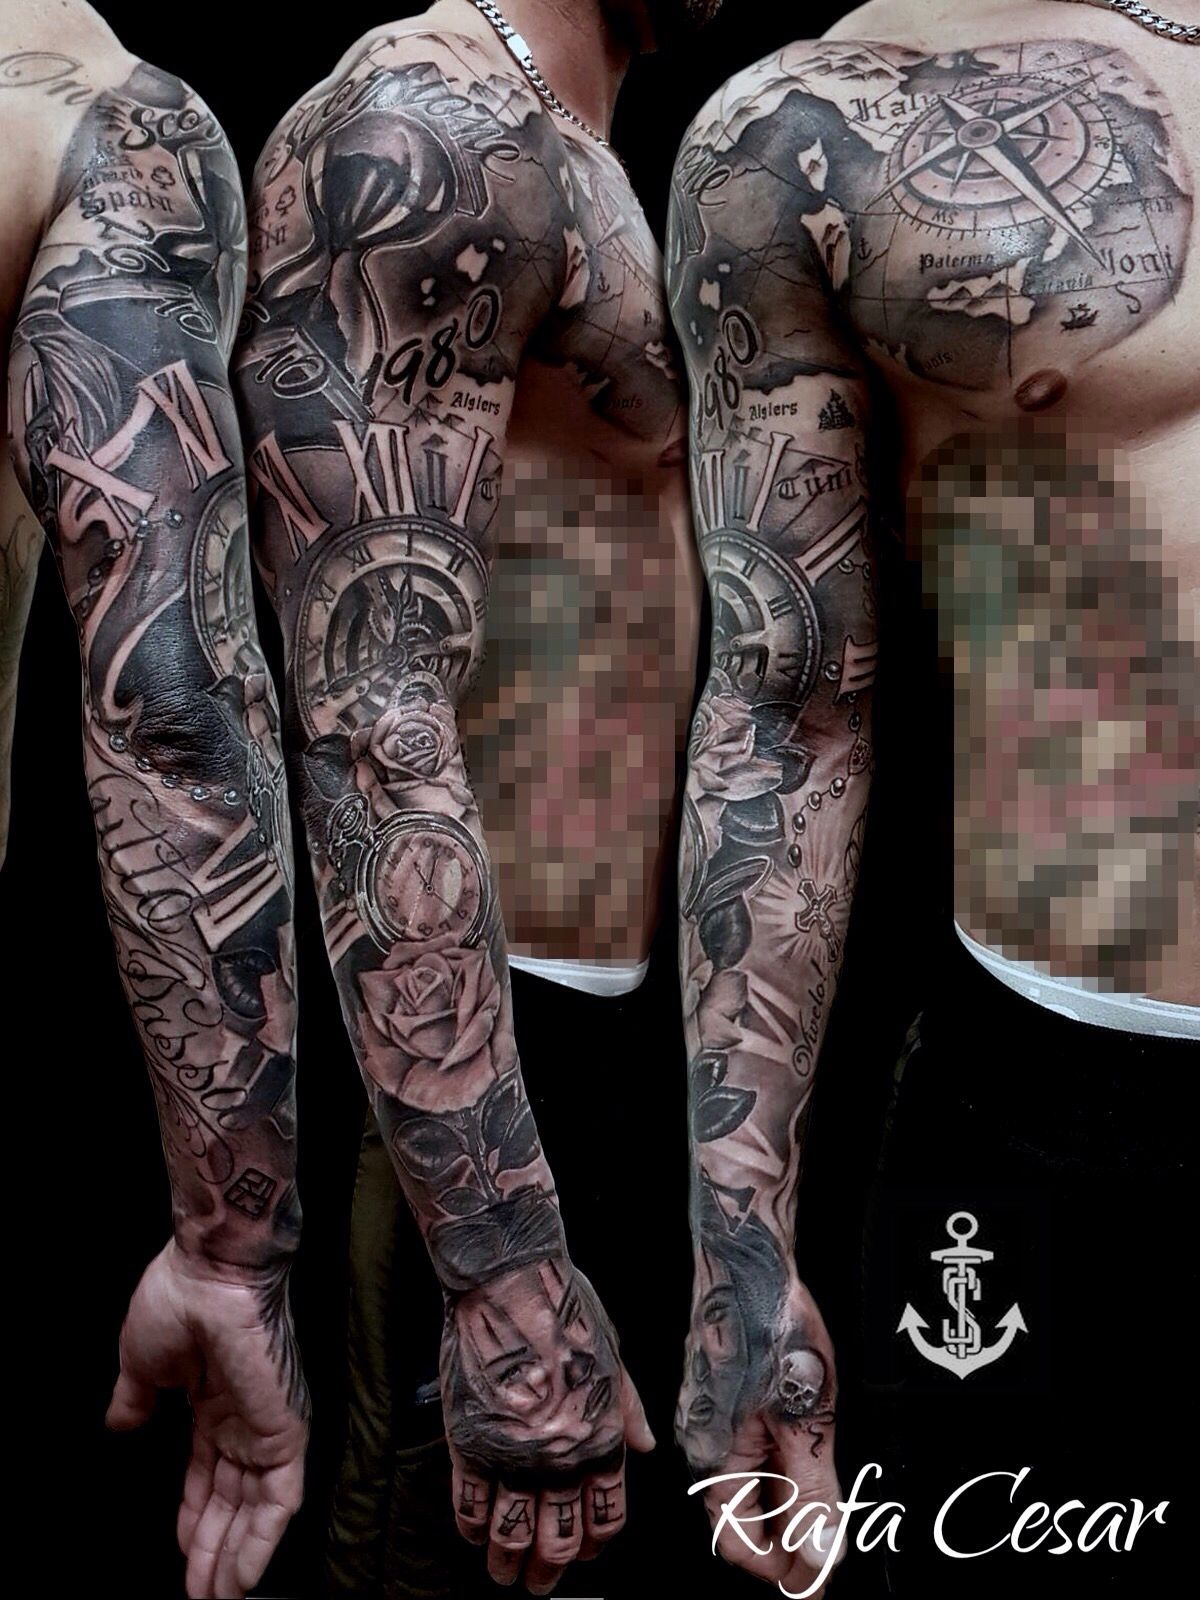 chicano sleeve tattoo tats pinterest tattoo ideen tattoo vorlagen und tattoos f r m nner. Black Bedroom Furniture Sets. Home Design Ideas